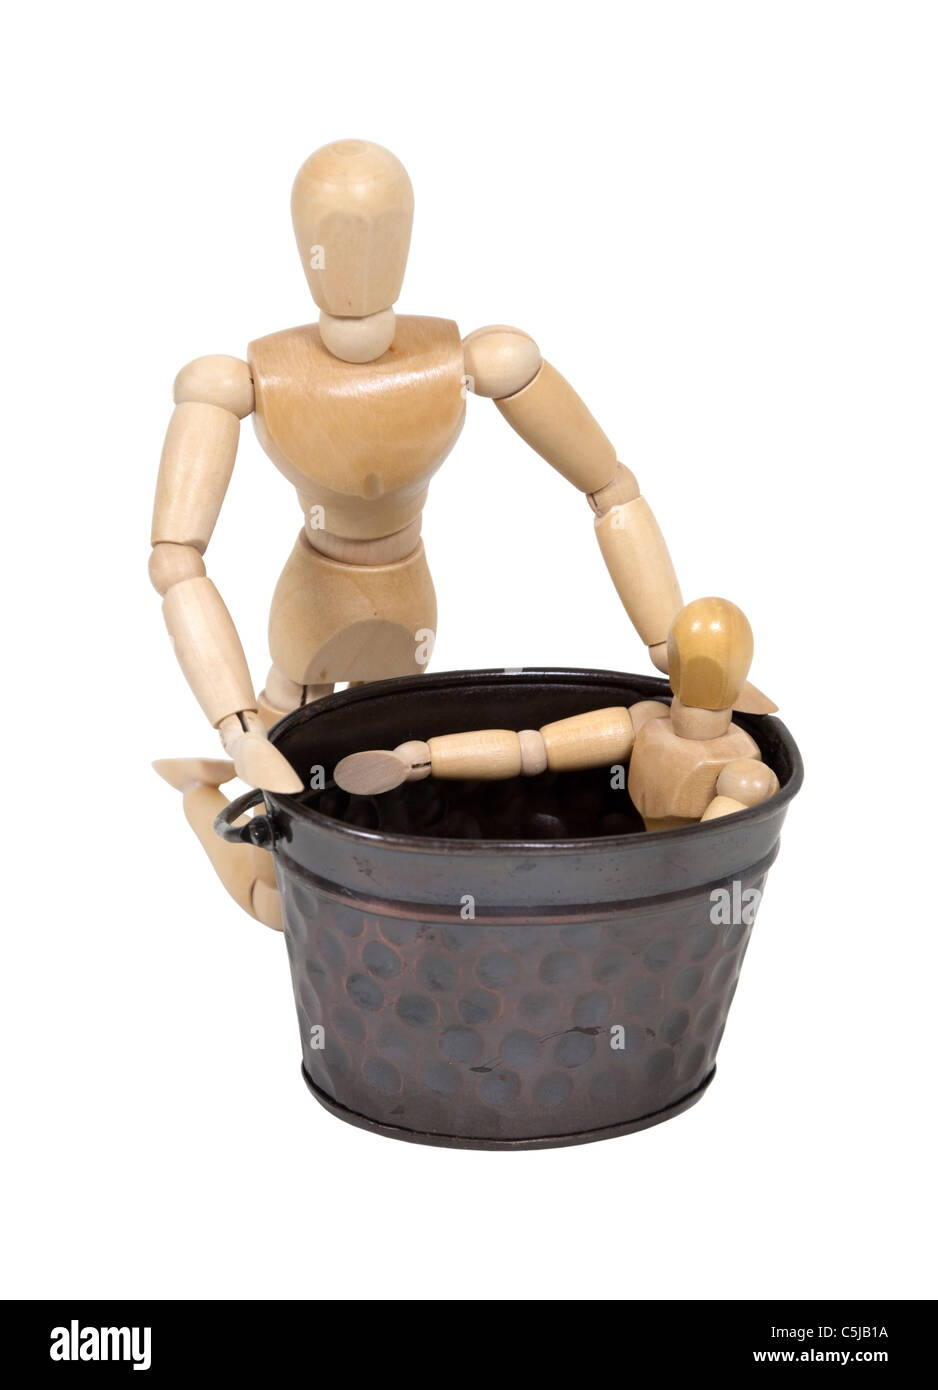 Evening child bath time in a large tub - path included - Stock Image